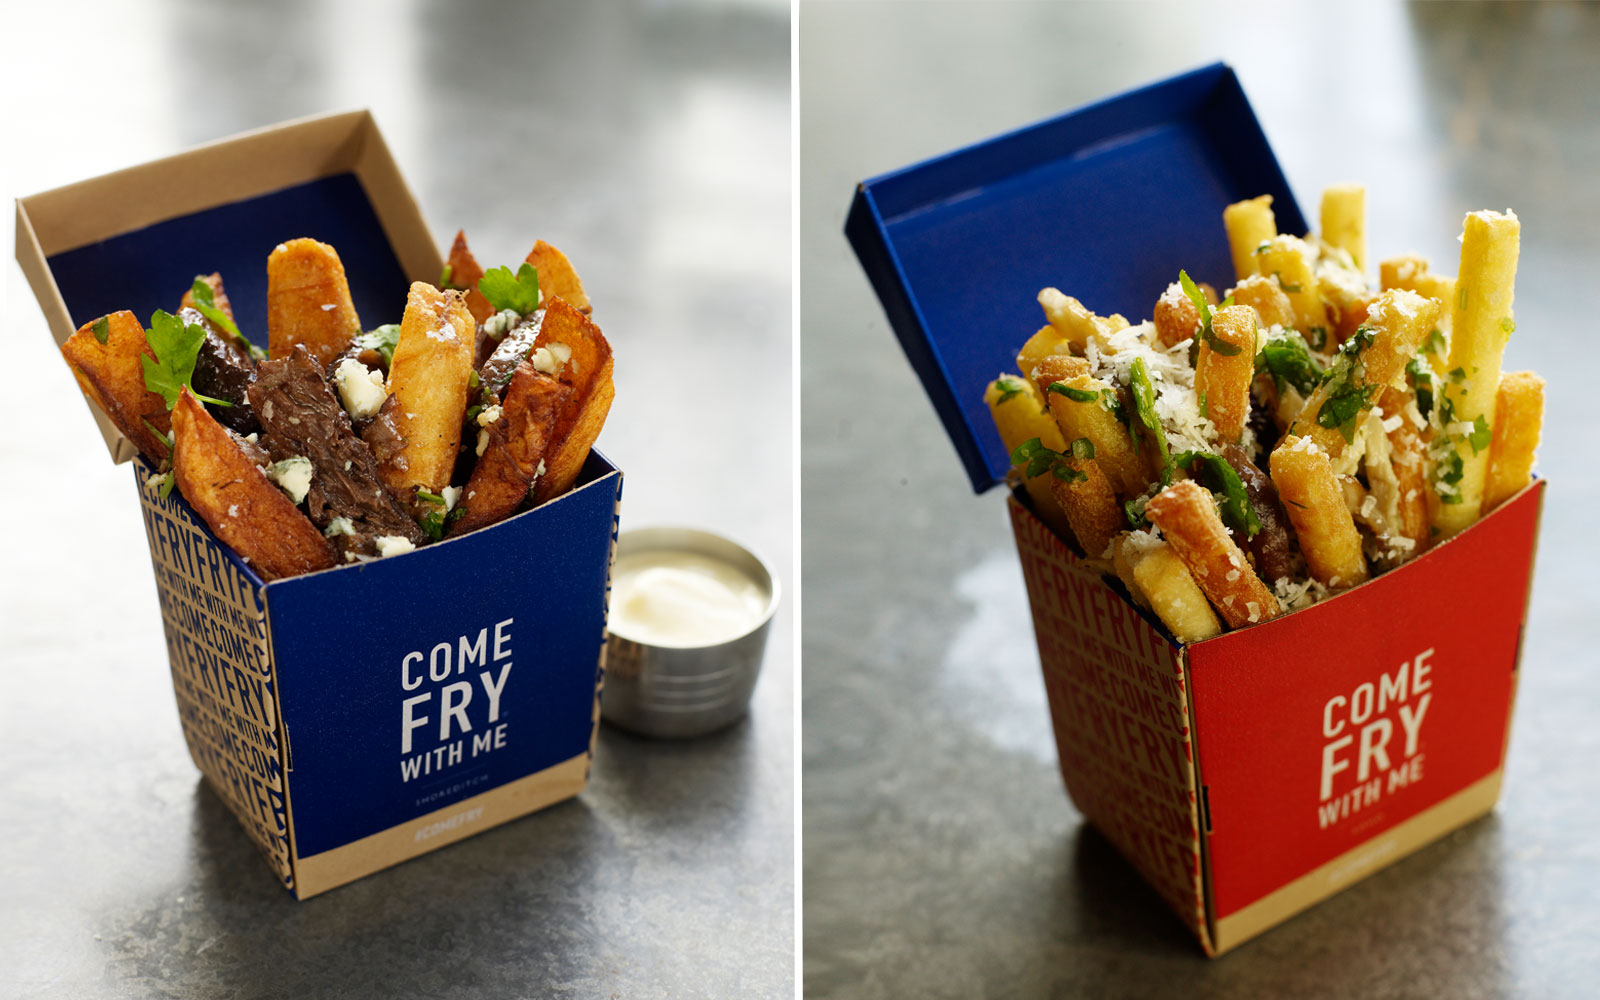 London's New French Fry Restaurant